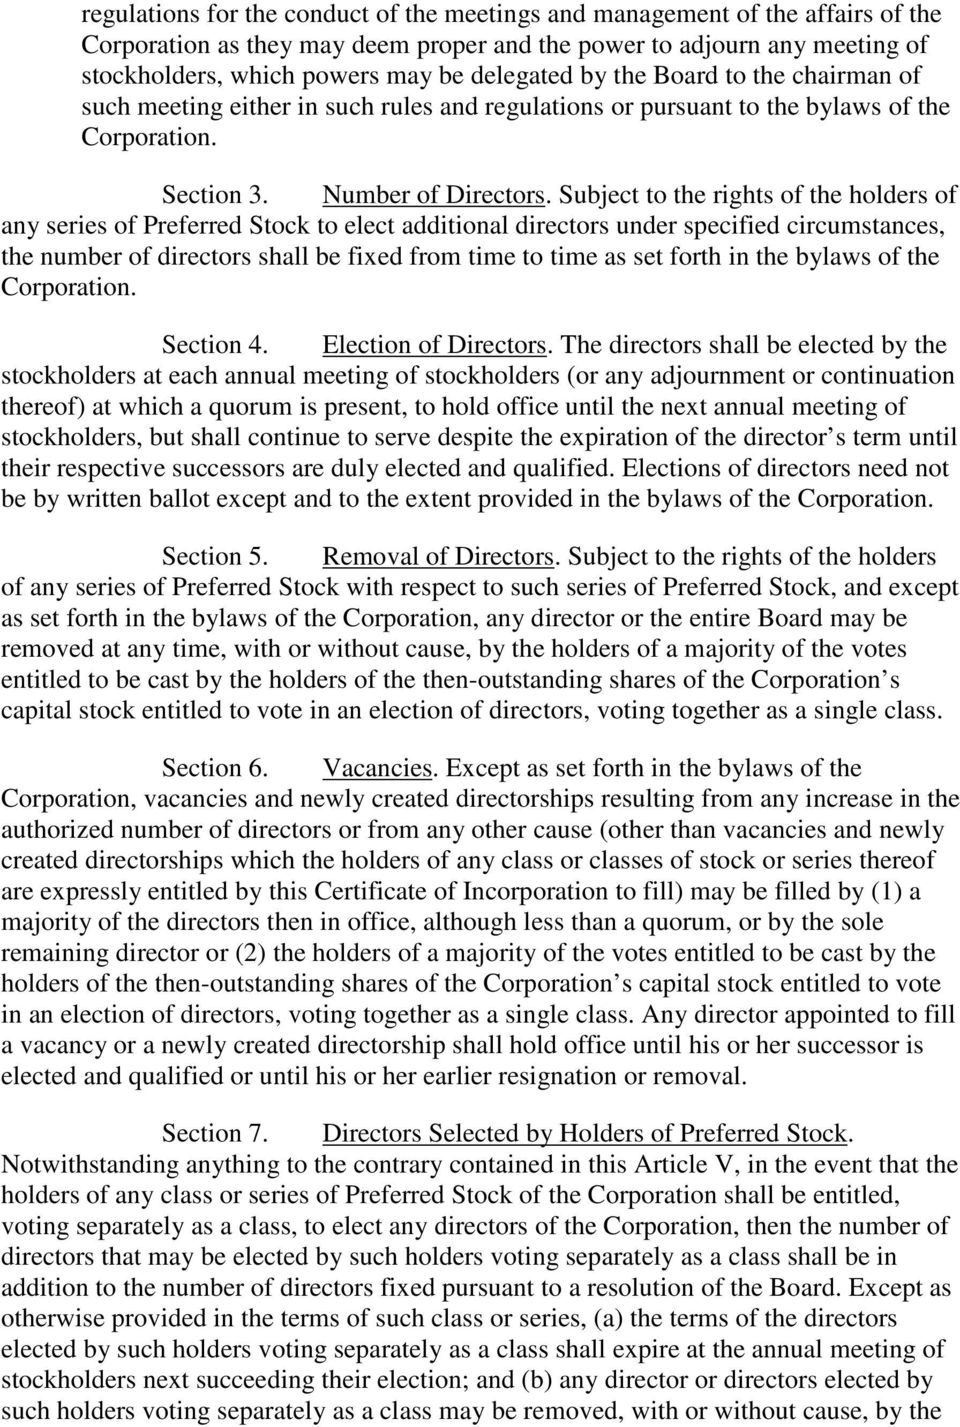 Subject to the rights of the holders of any series of Preferred Stock to elect additional directors under specified circumstances, the number of directors shall be fixed from time to time as set